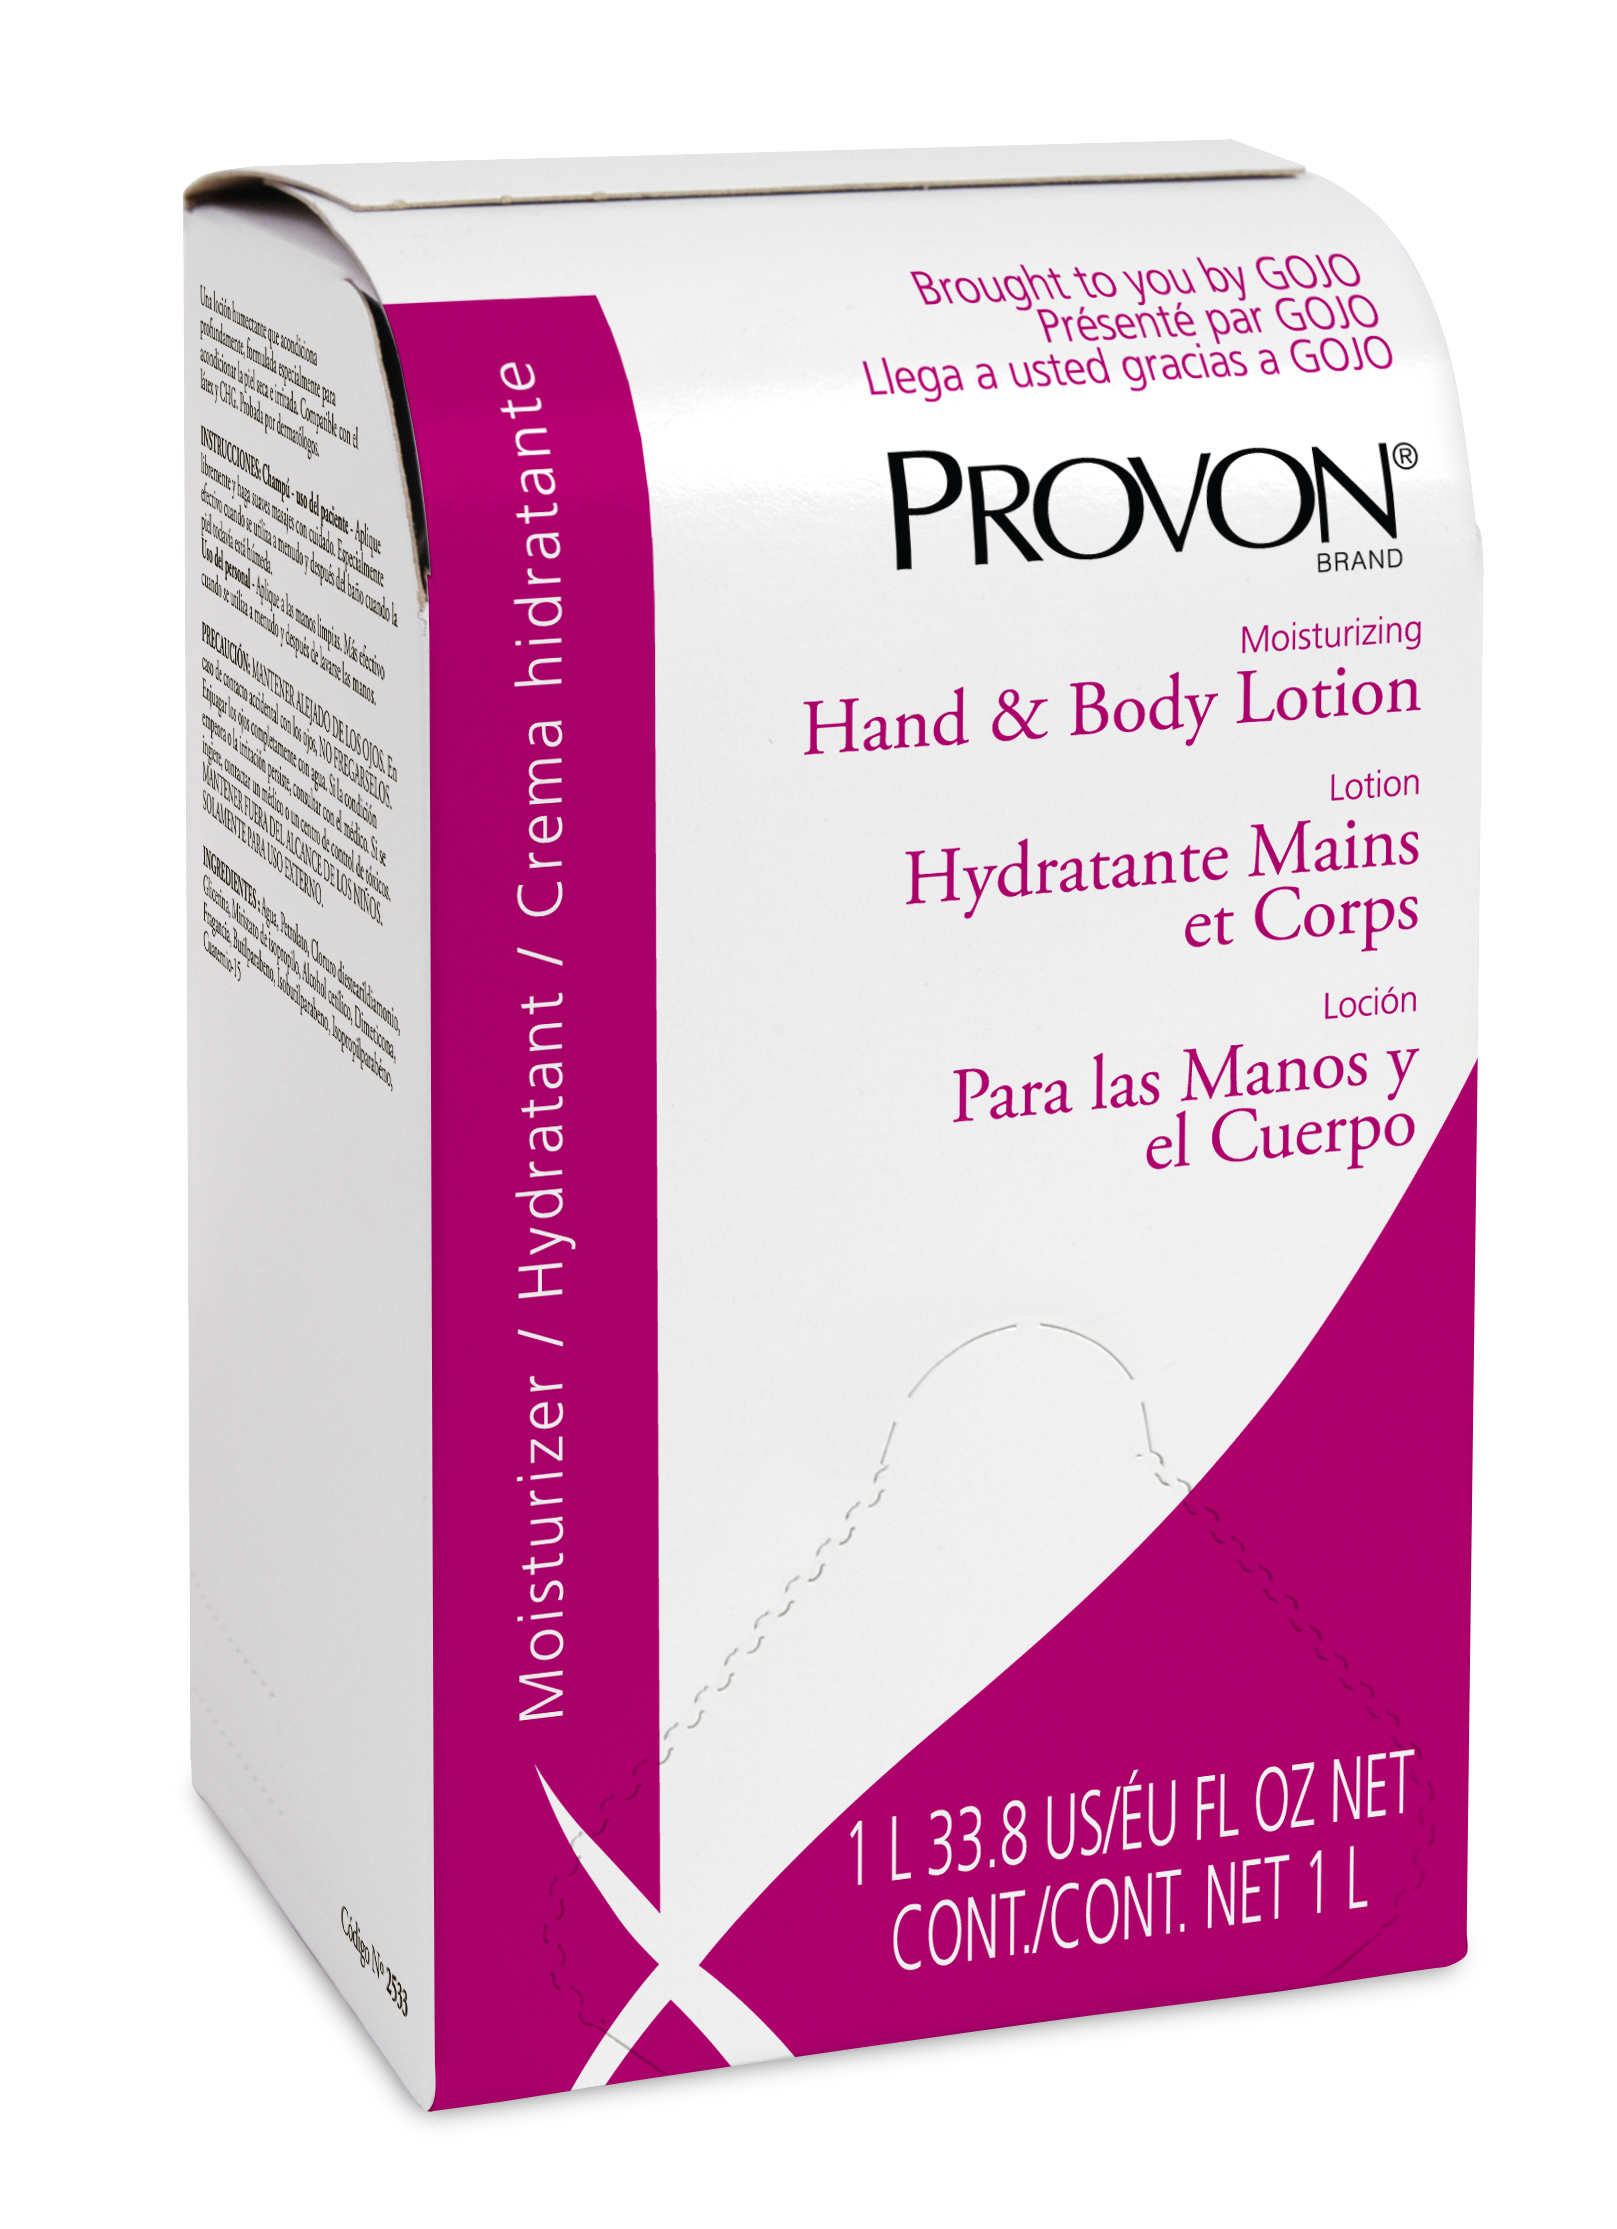 Lotion Hand & Body Provon Nxt 1000Ml 8 Ea/Cs